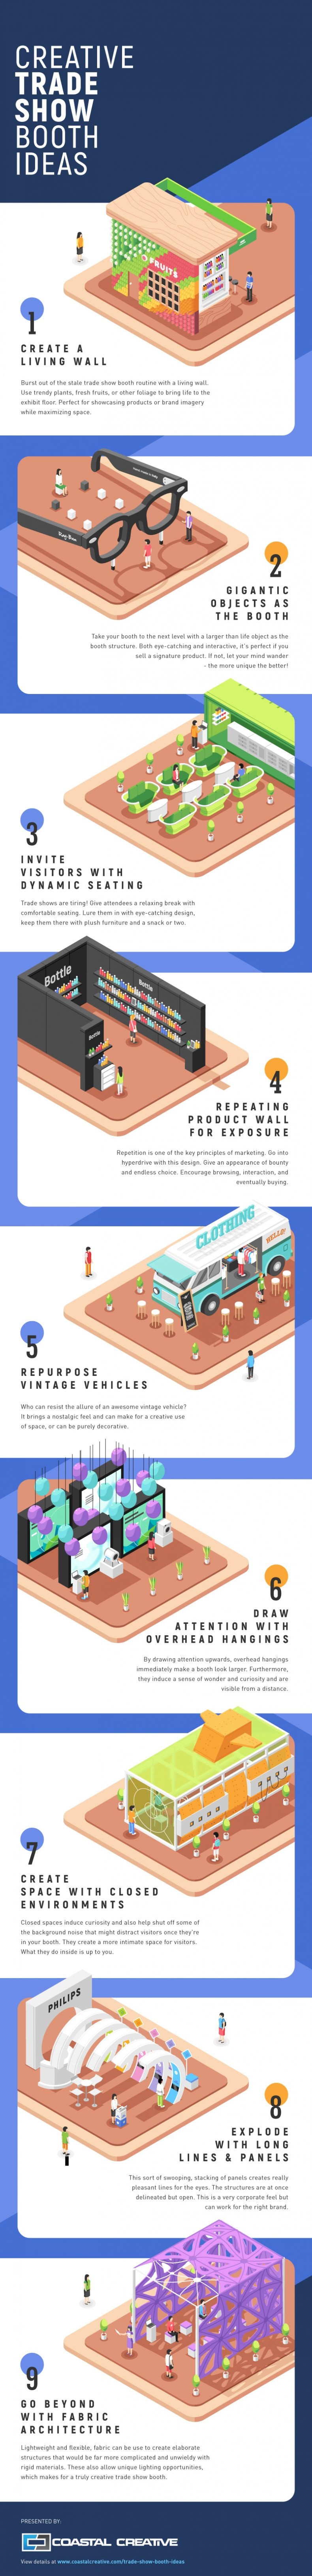 infographic - 9 creative tradeshow exhibit ideas